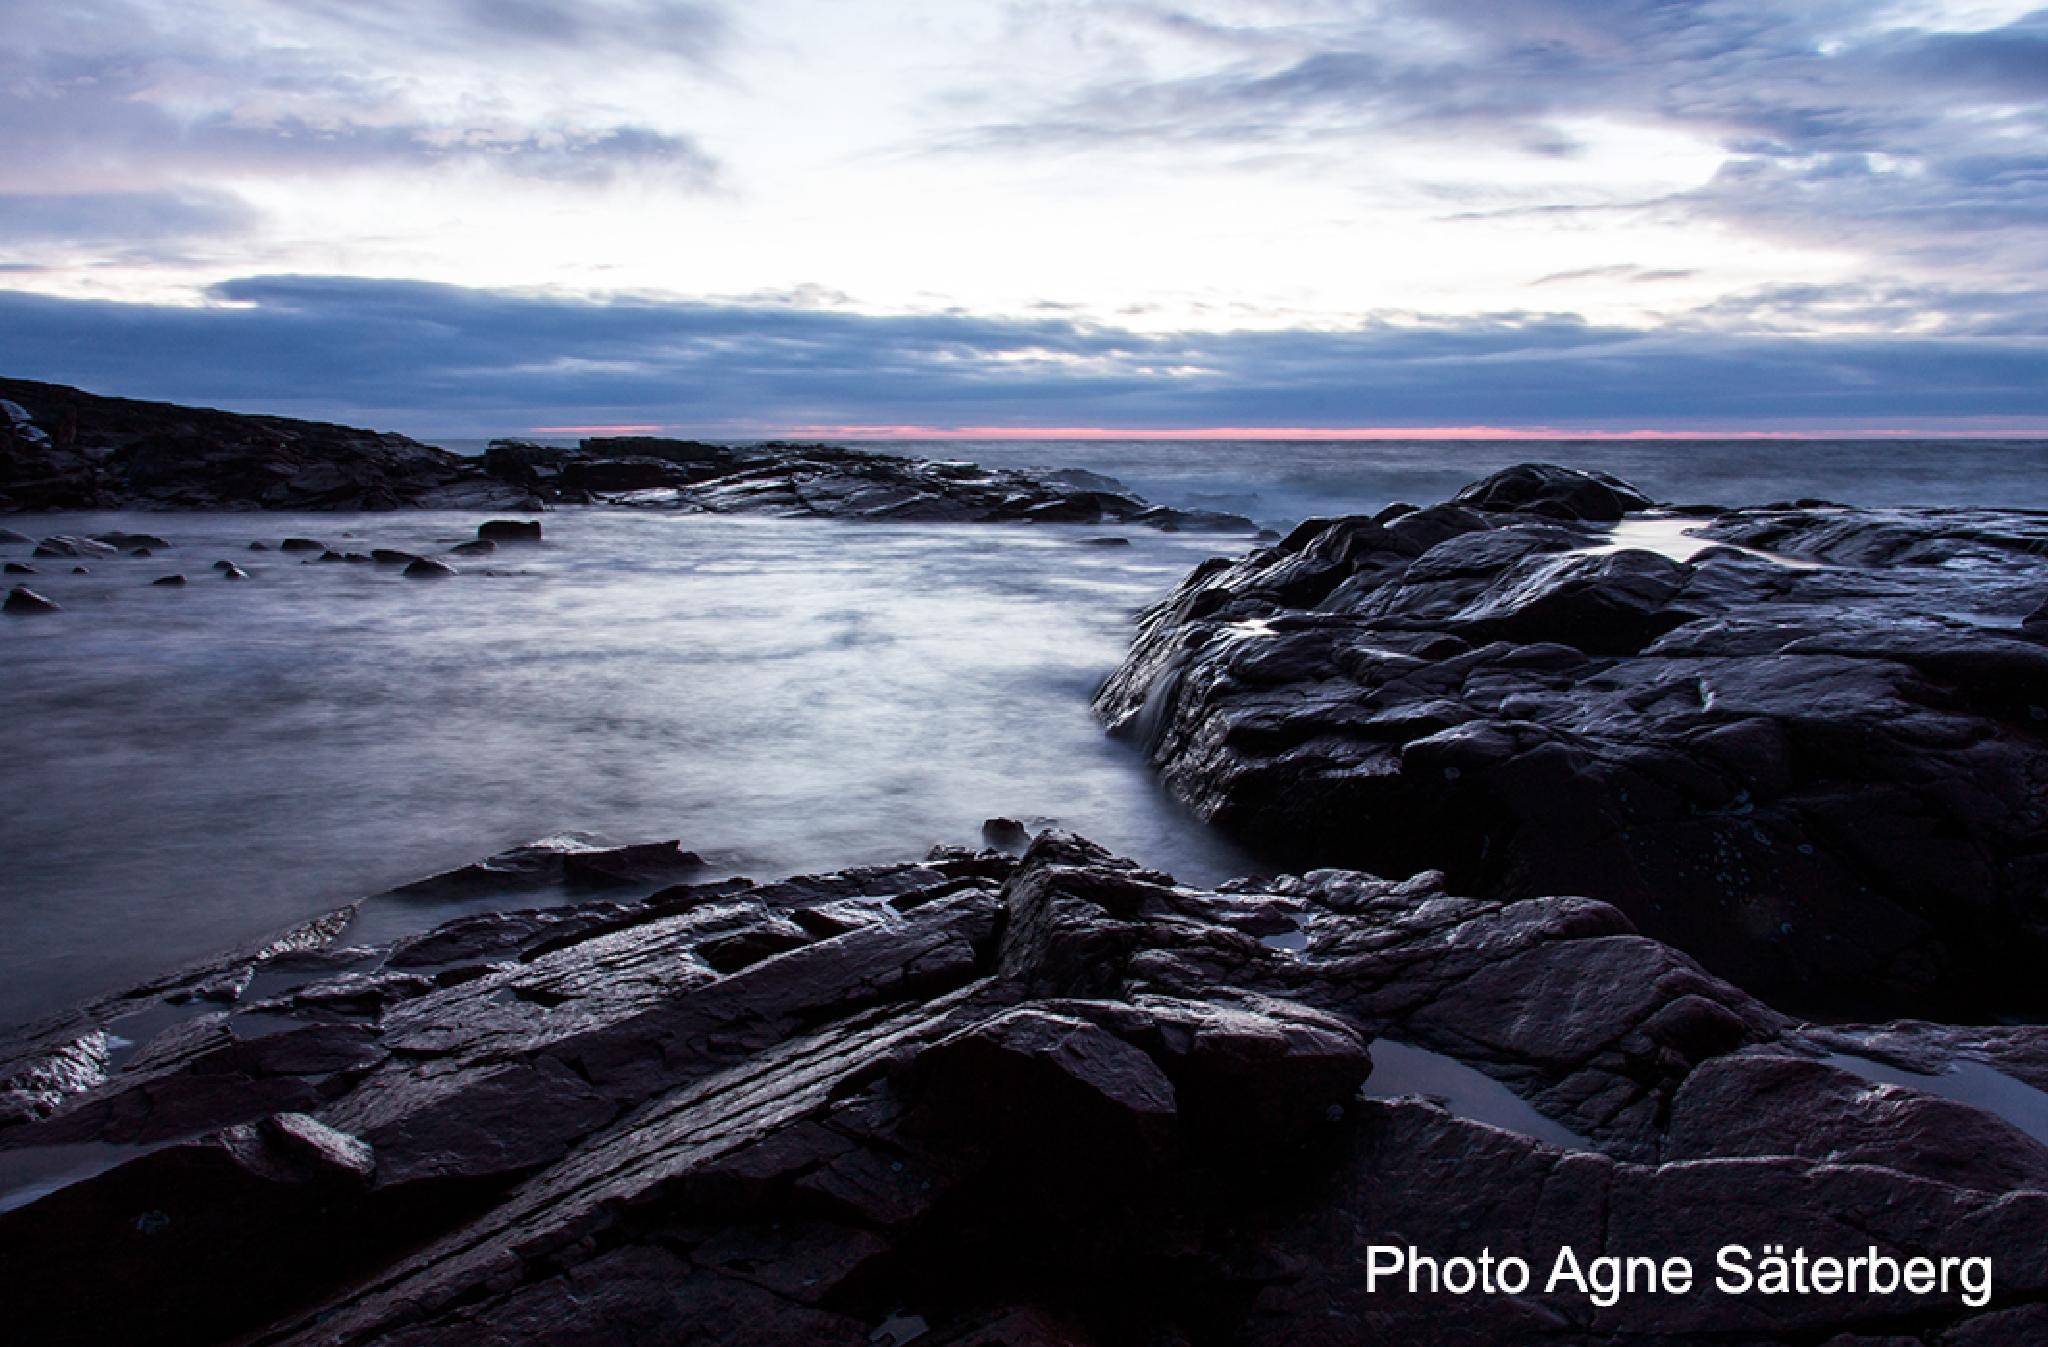 Sunrise early morning 2015-01-17 at Nordingrå High Coast by Agne Säterberg